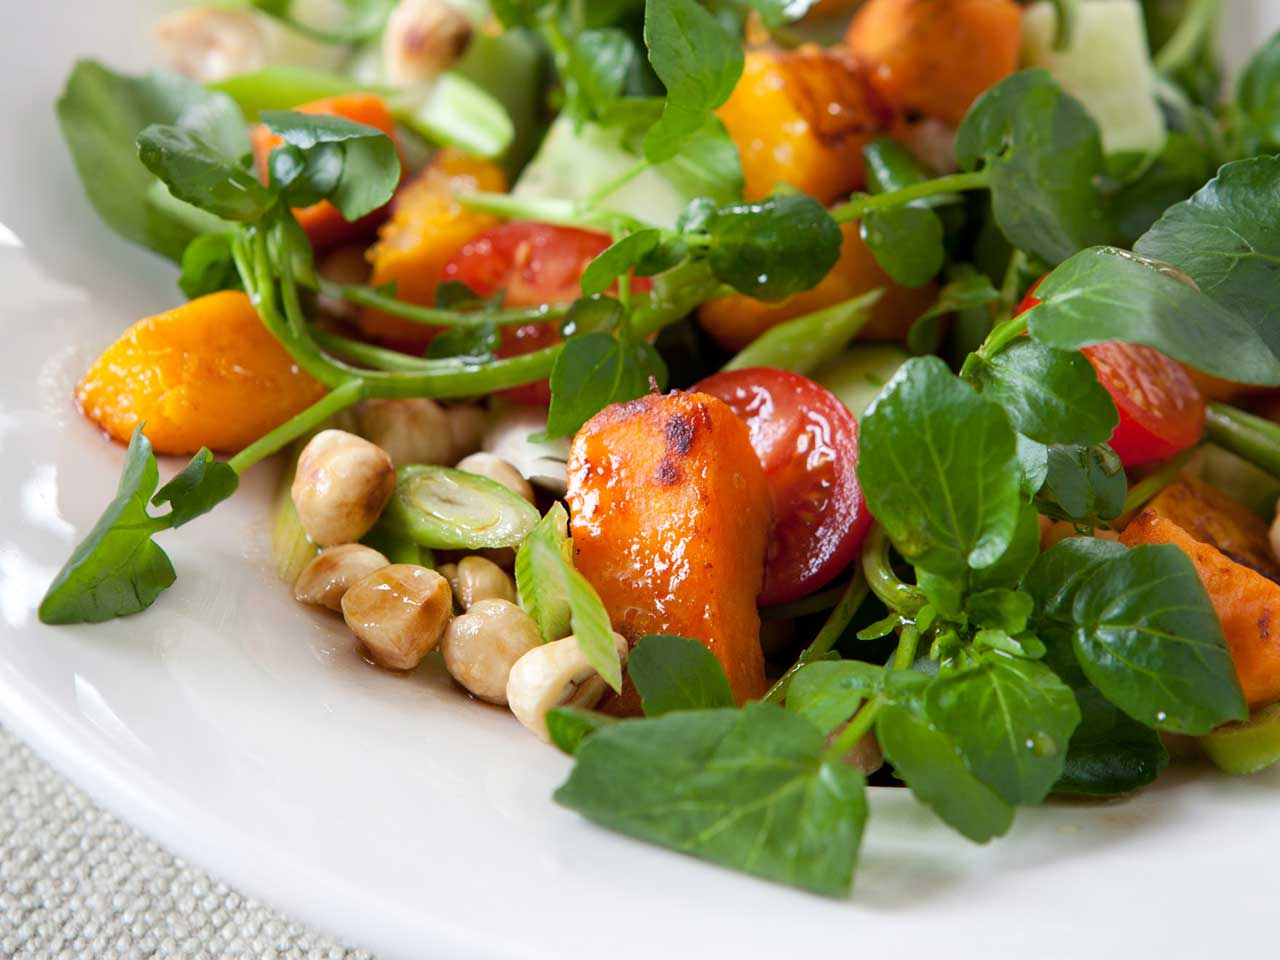 Chickpea, hazelnut, sweet potato and butternut squash salad